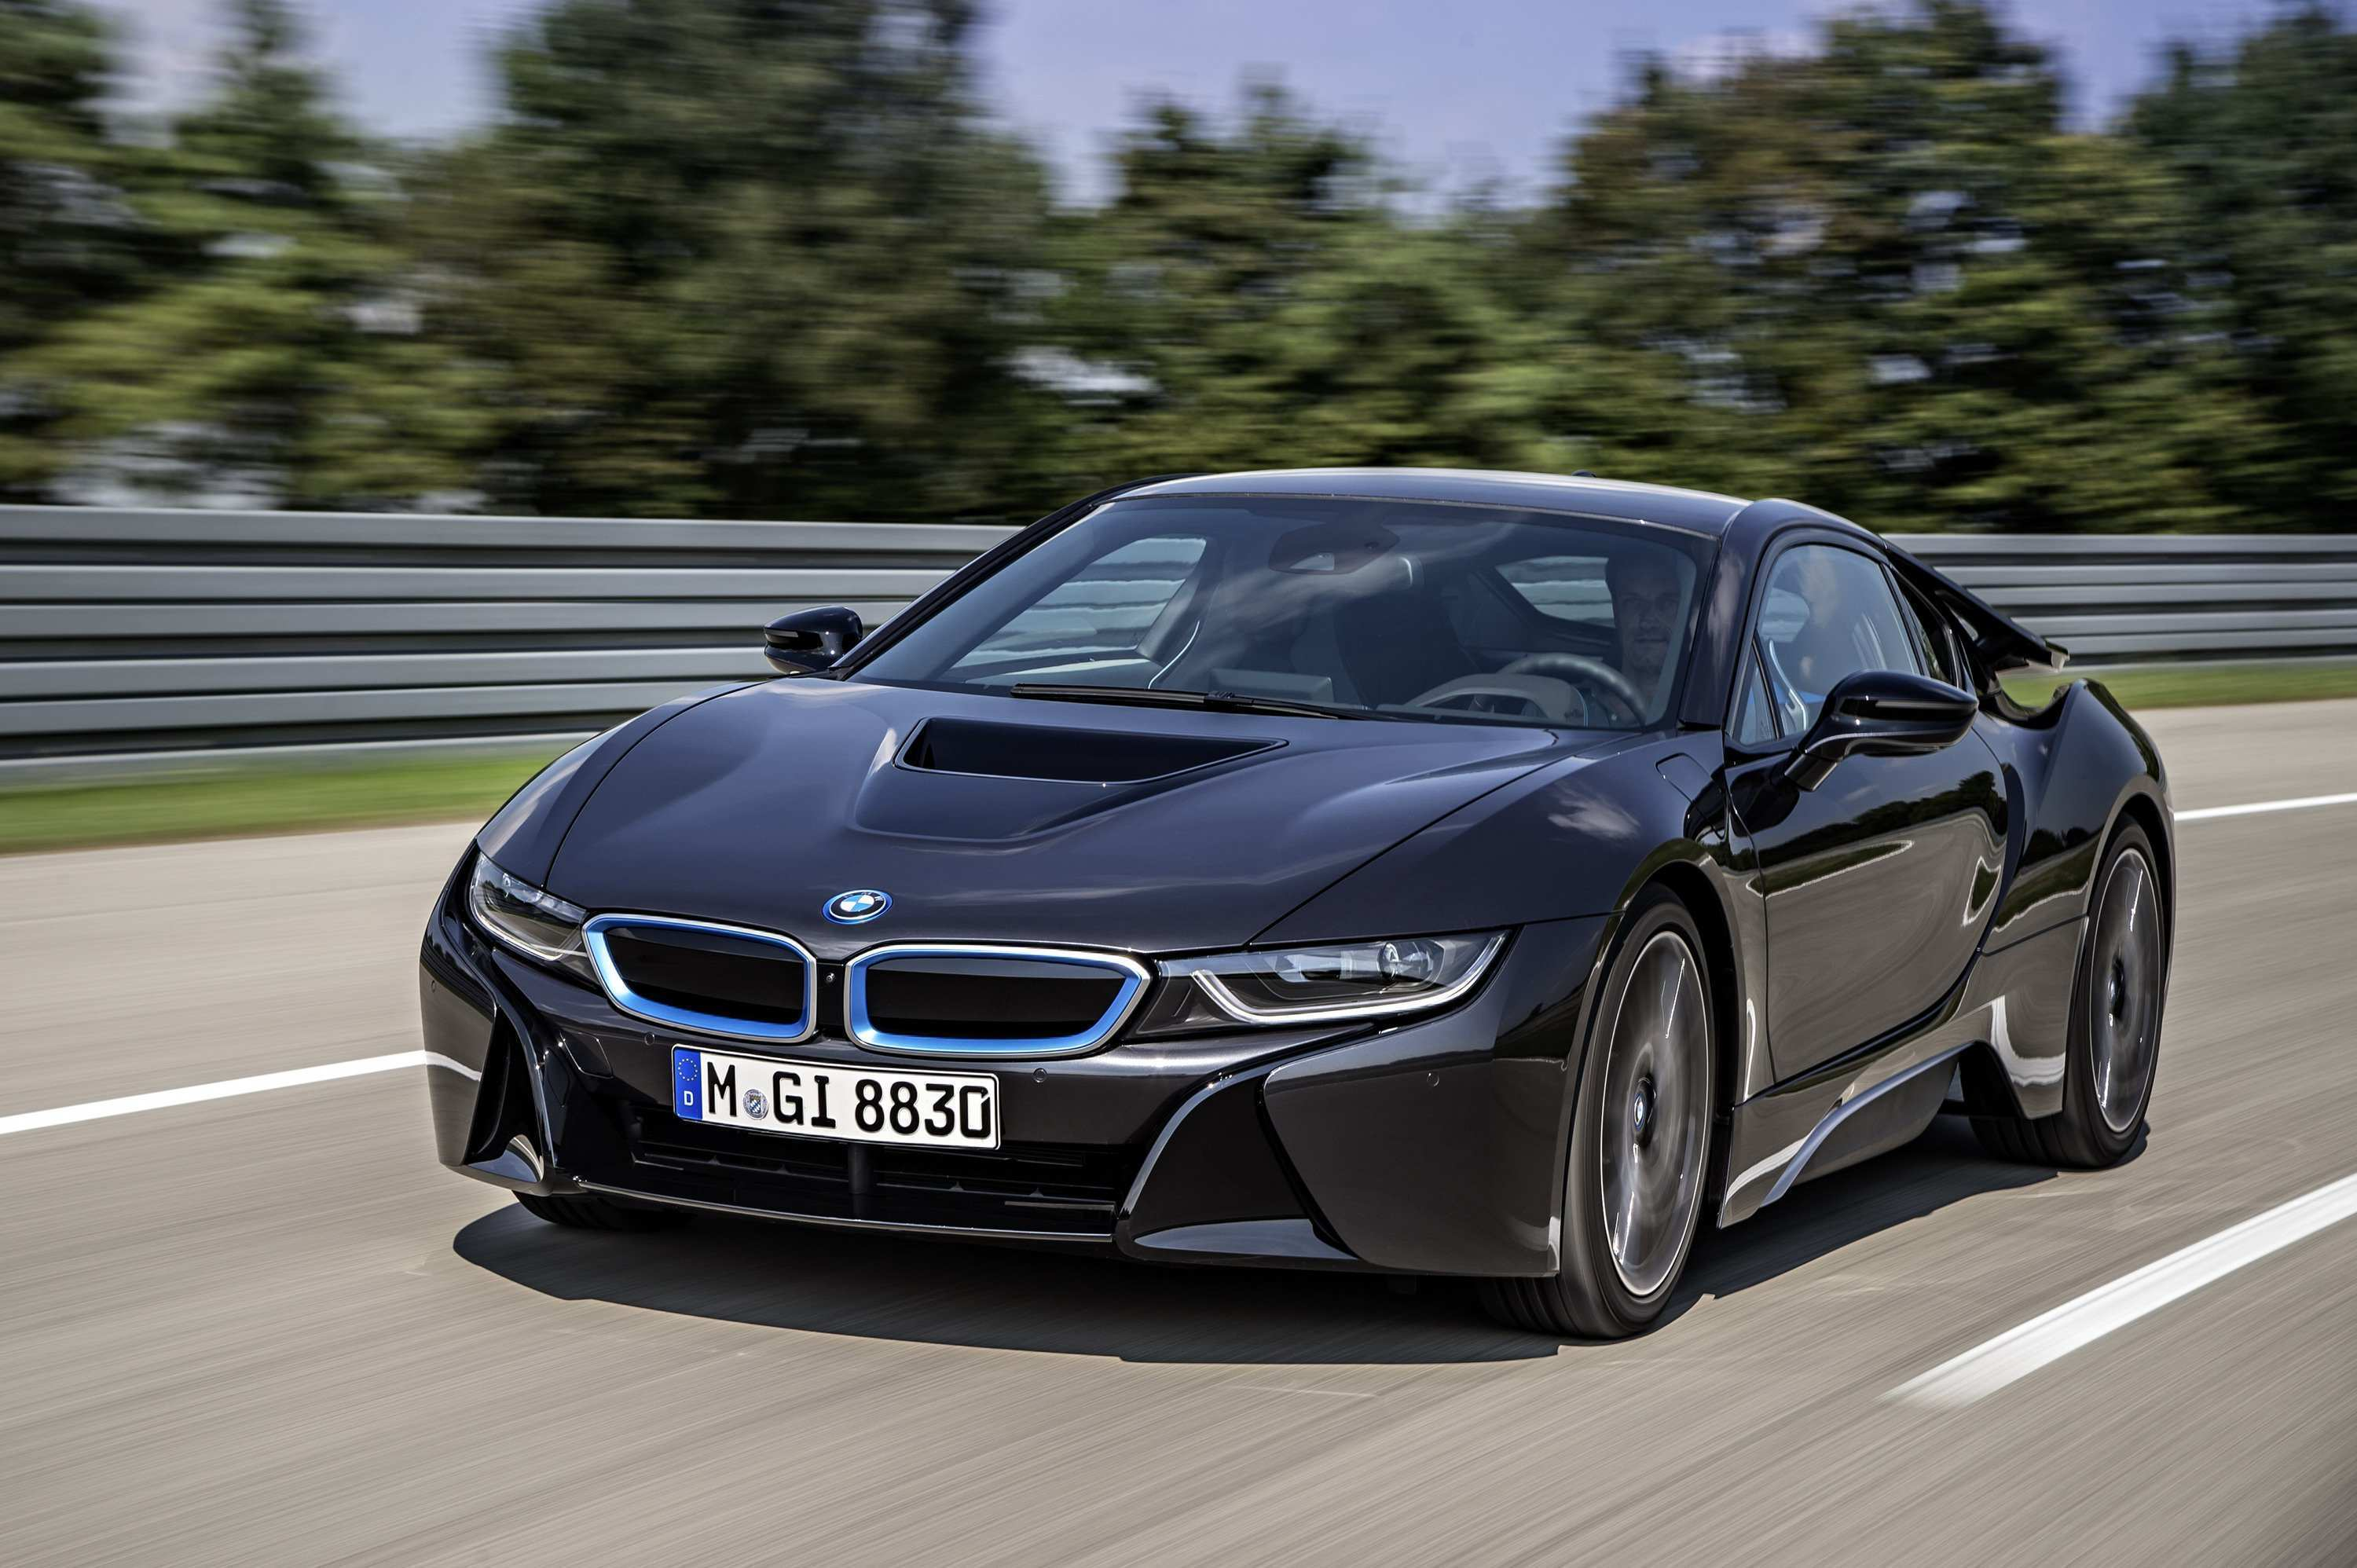 42 Concept of 2020 Bmw I8 Specs and Review by 2020 Bmw I8